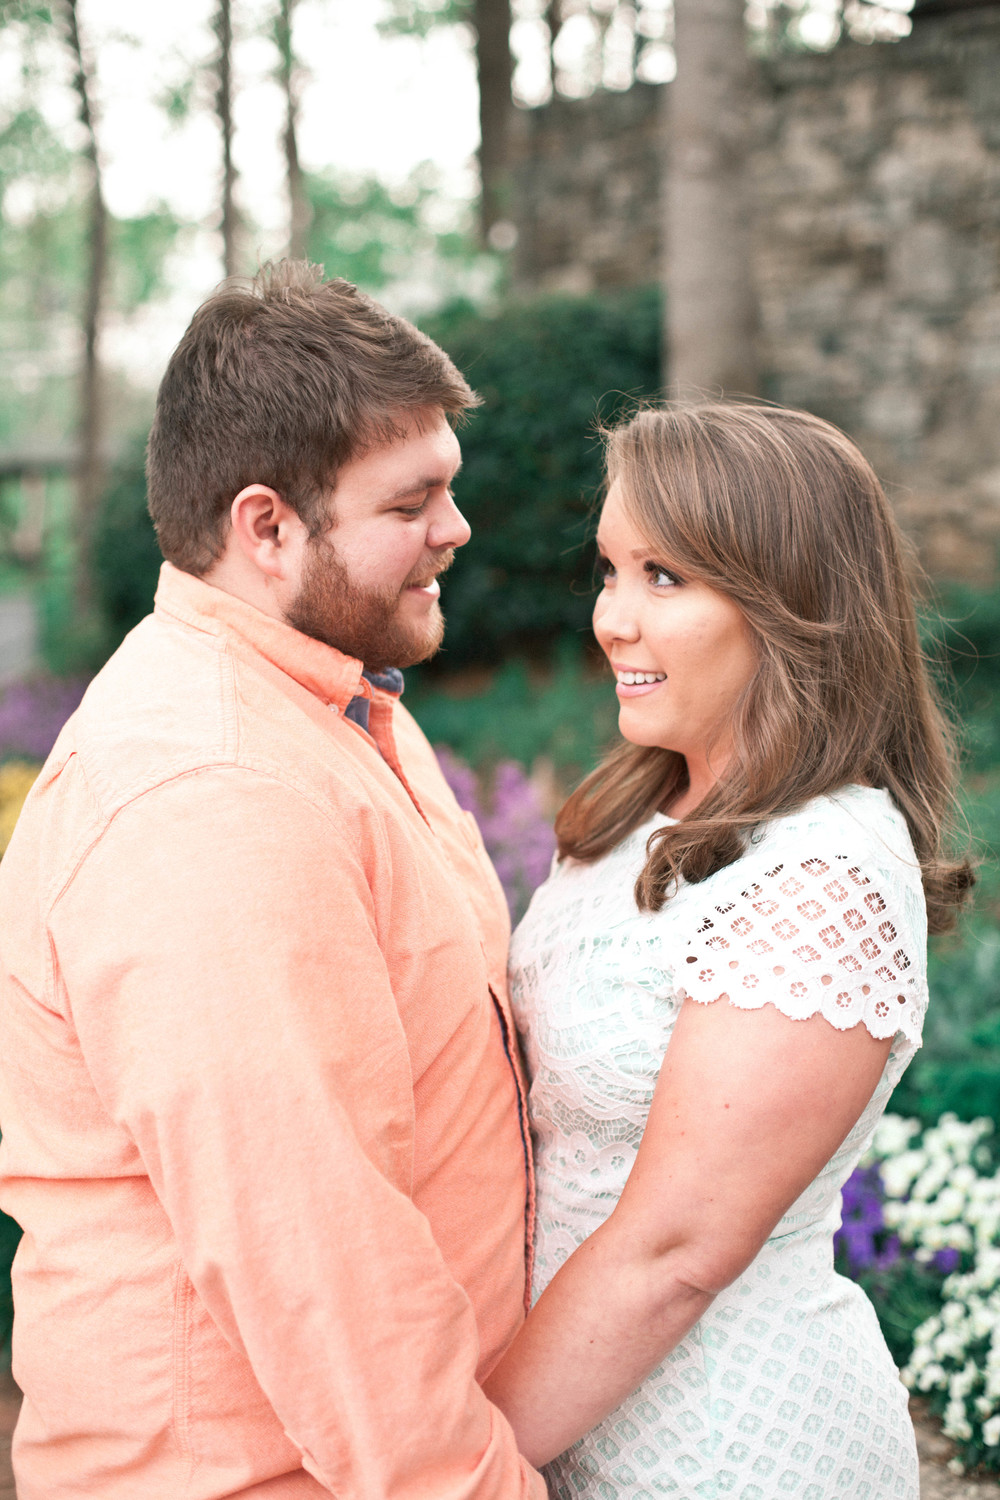 zach_gabbie_engagement_poured_out_photography-20.jpg